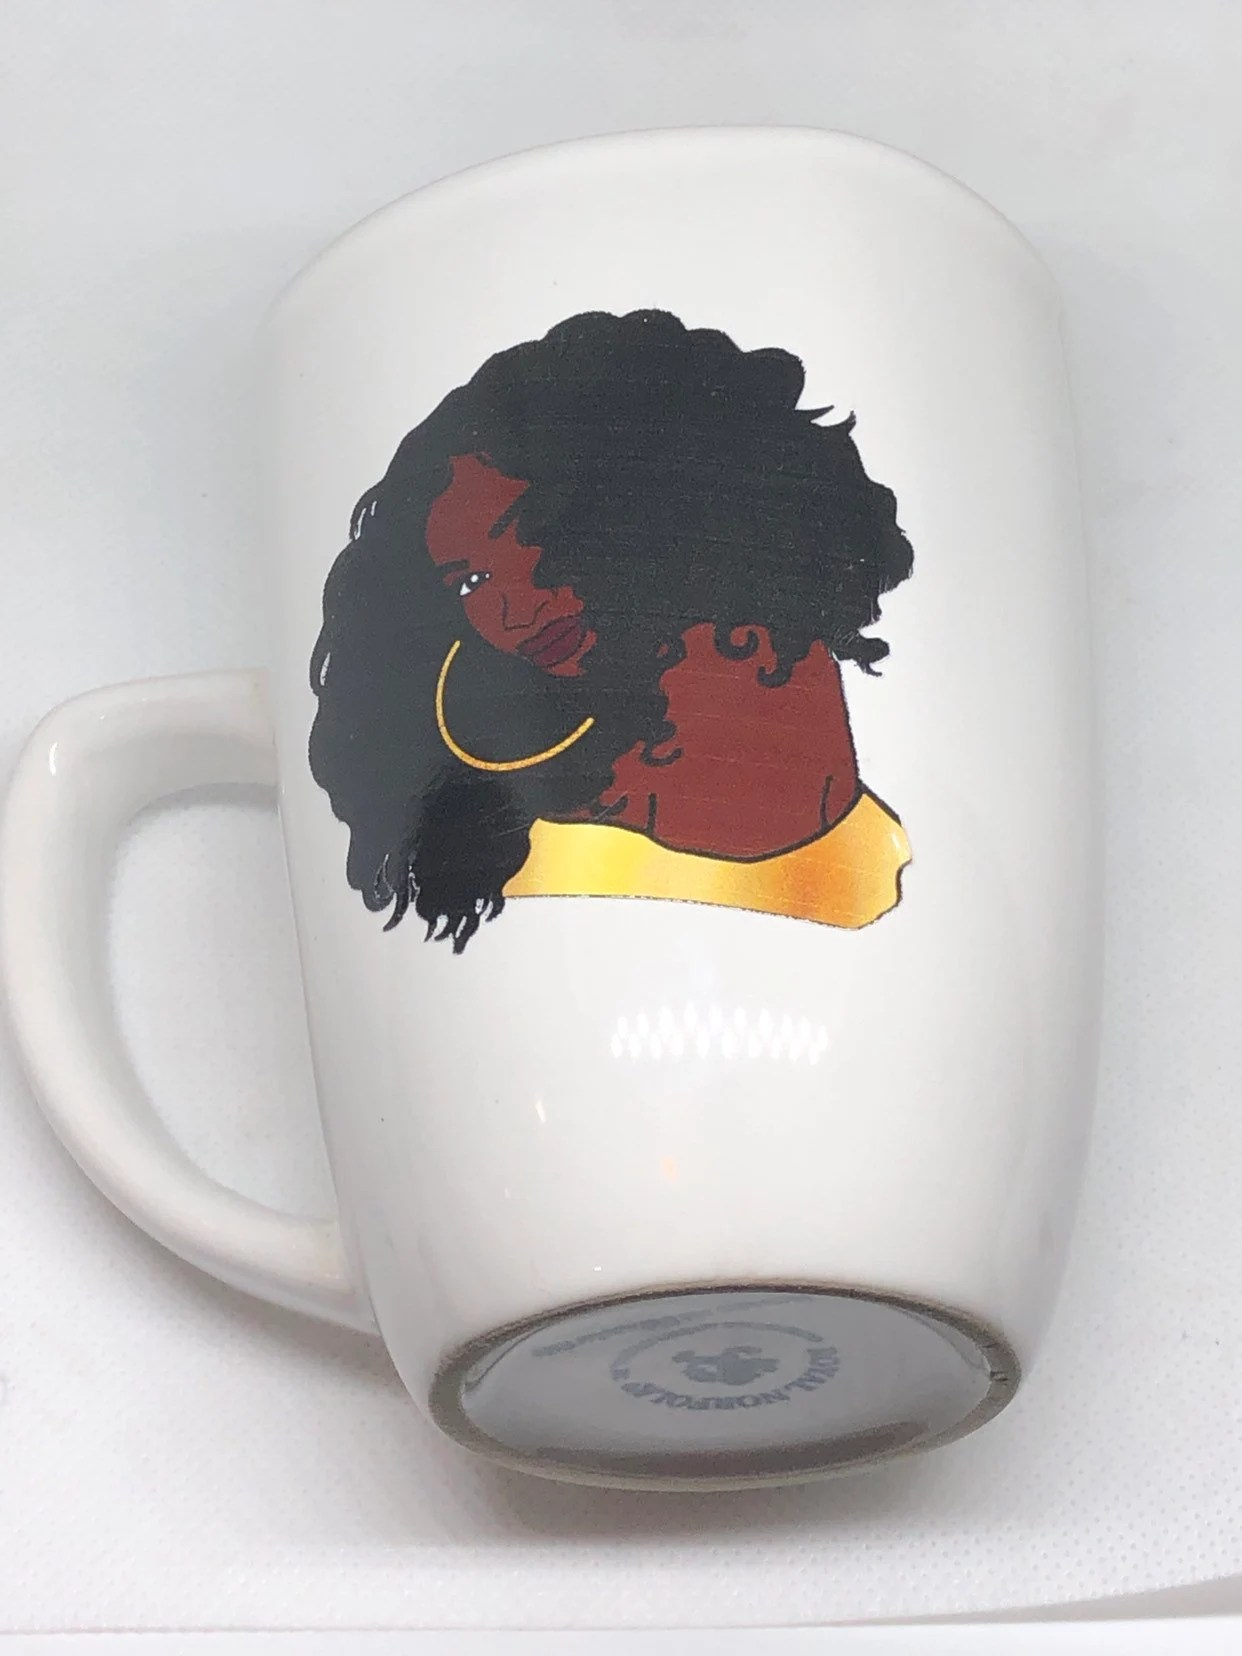 Where To Buy Nice Coffee Mugs Afrocentric Coffee Mug Afro American Coffee Mug Black Woman Boss